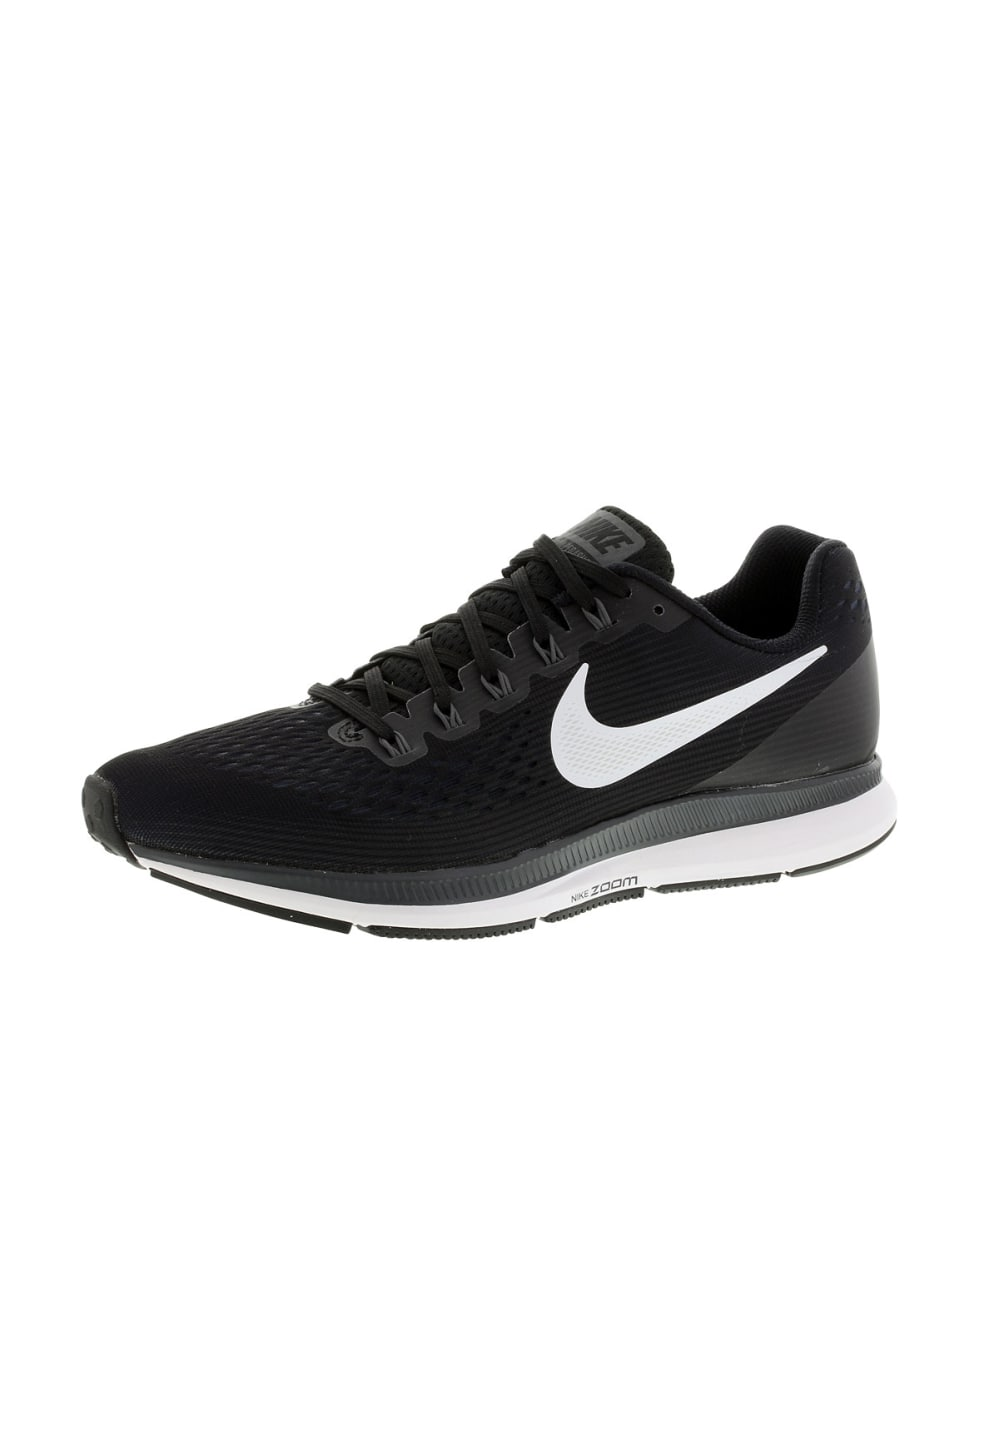 7722f148d059c Next. -50%. This product is currently out of stock. Nike. Air Zoom Pegasus  34 - Running shoes for Men